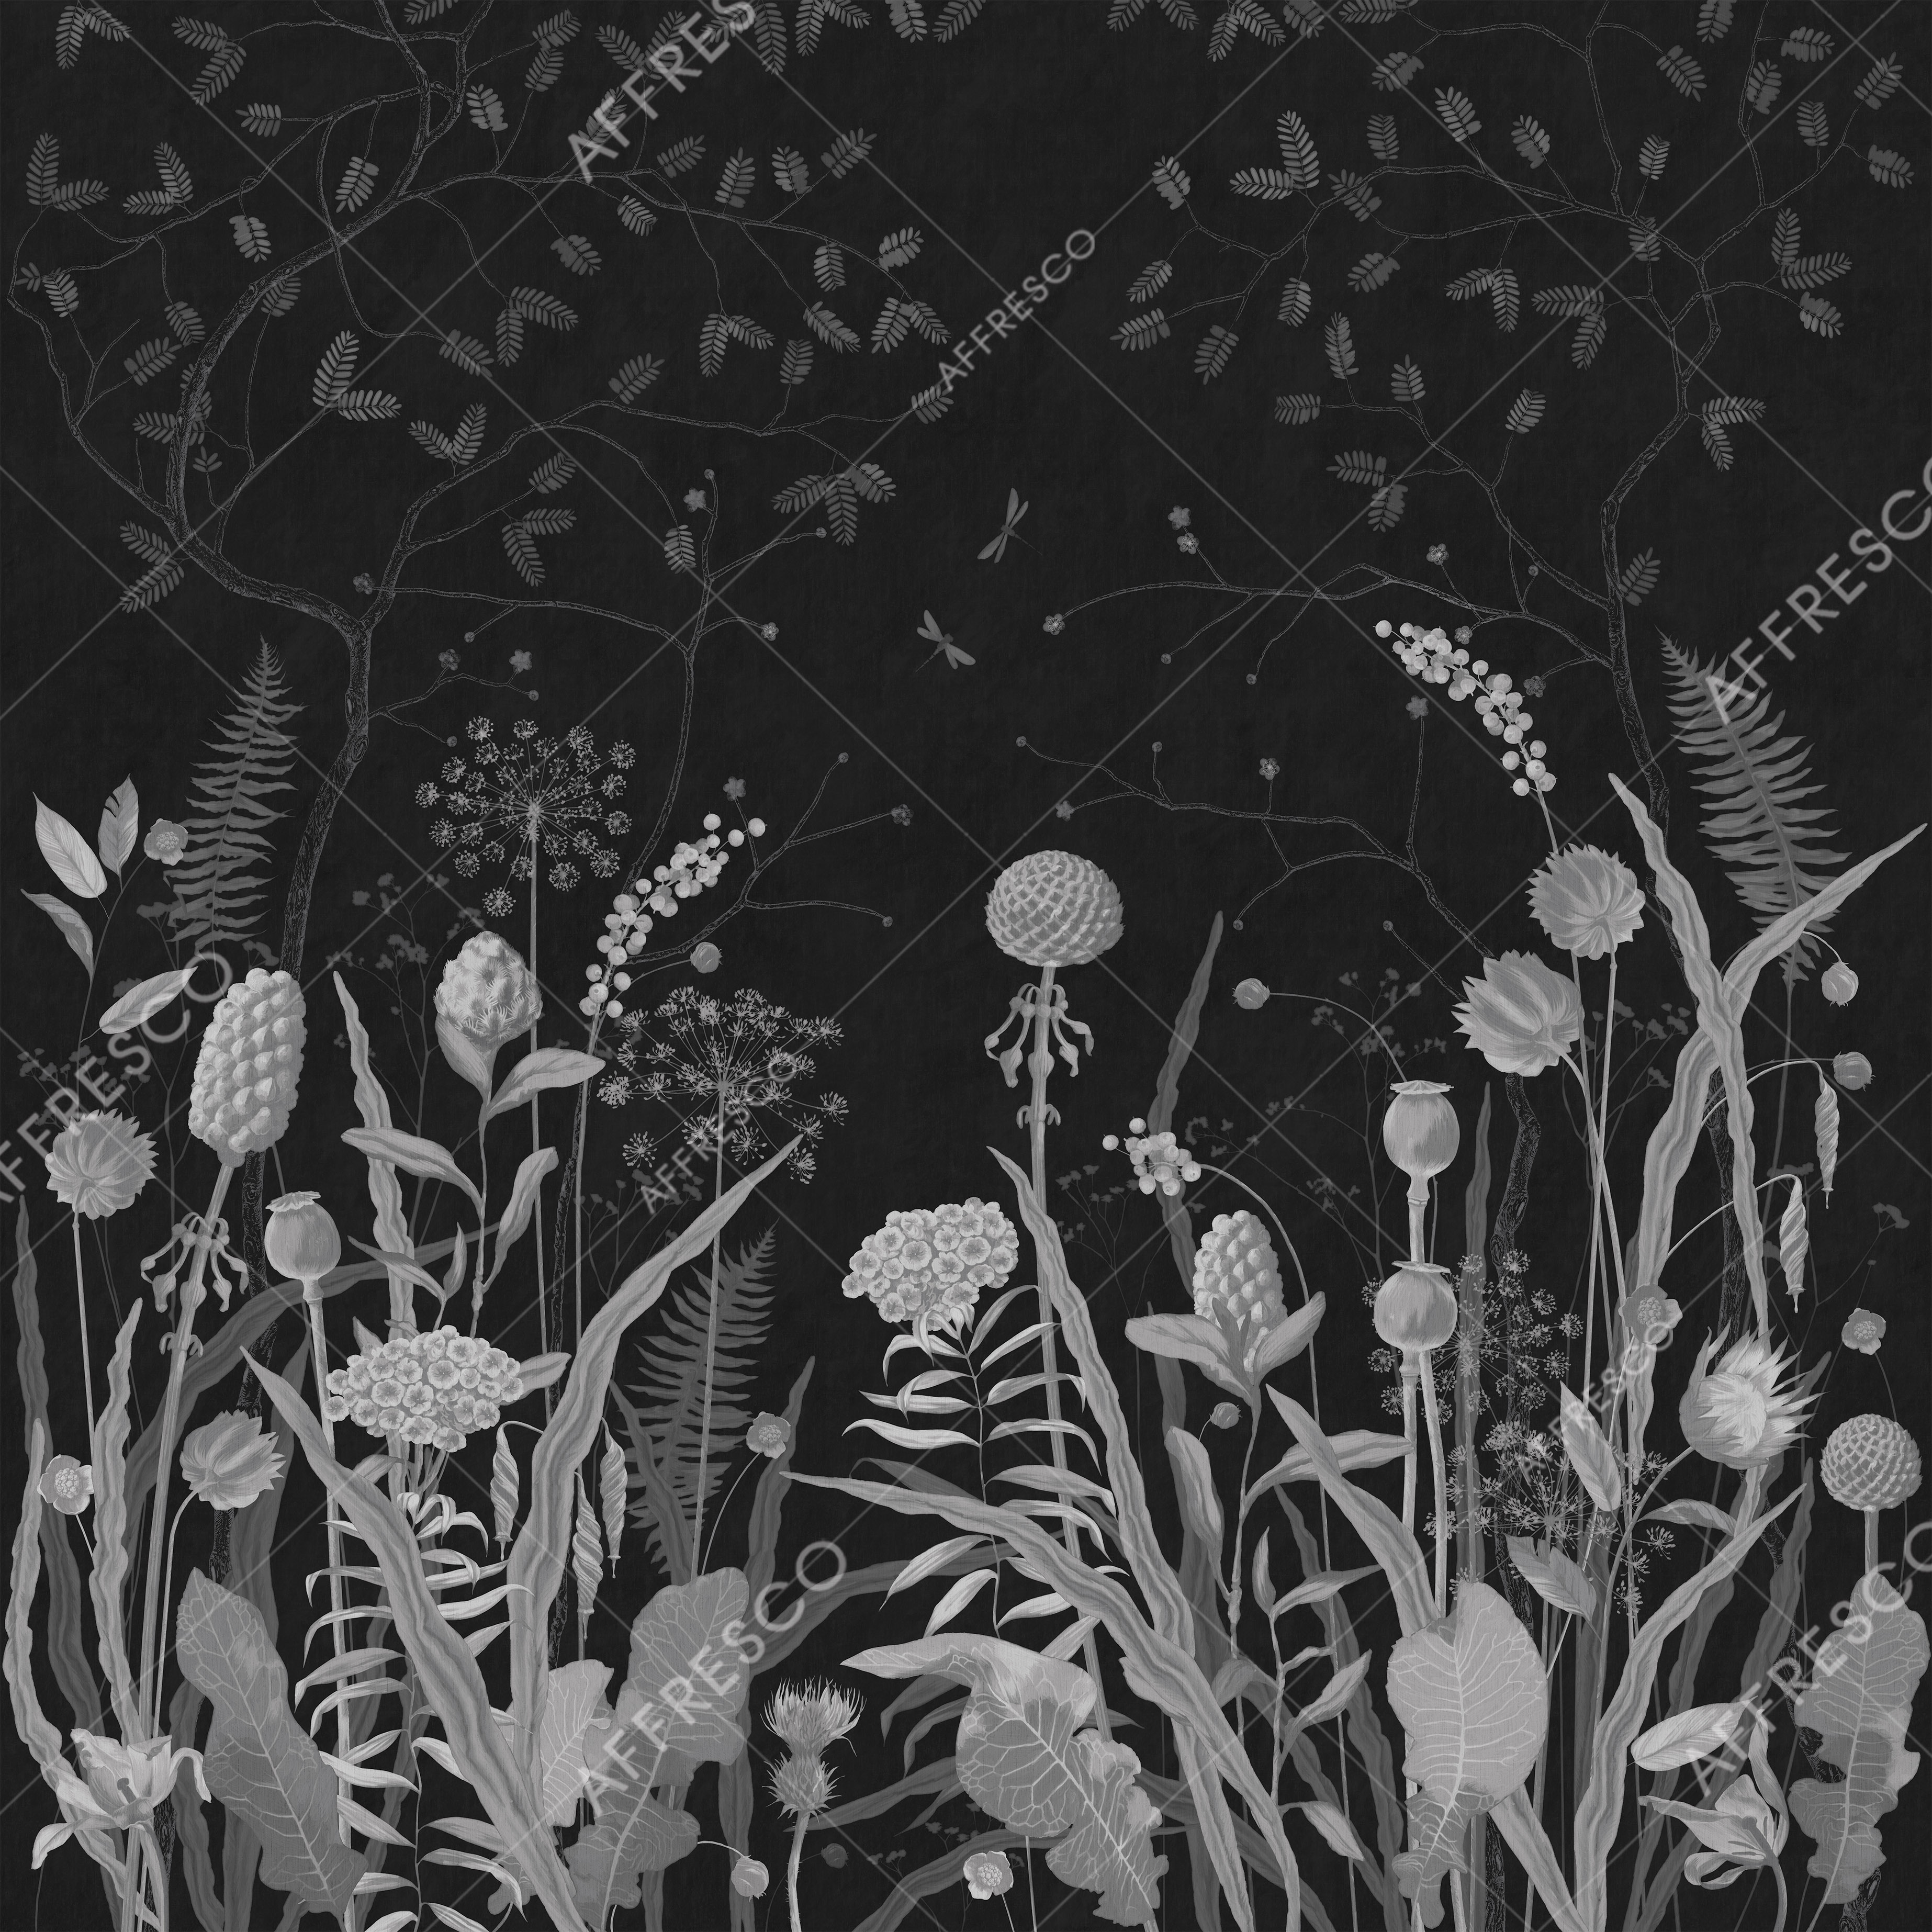 Handmade wallpaper, Handmade wallpaper | Nocturnal Meadow